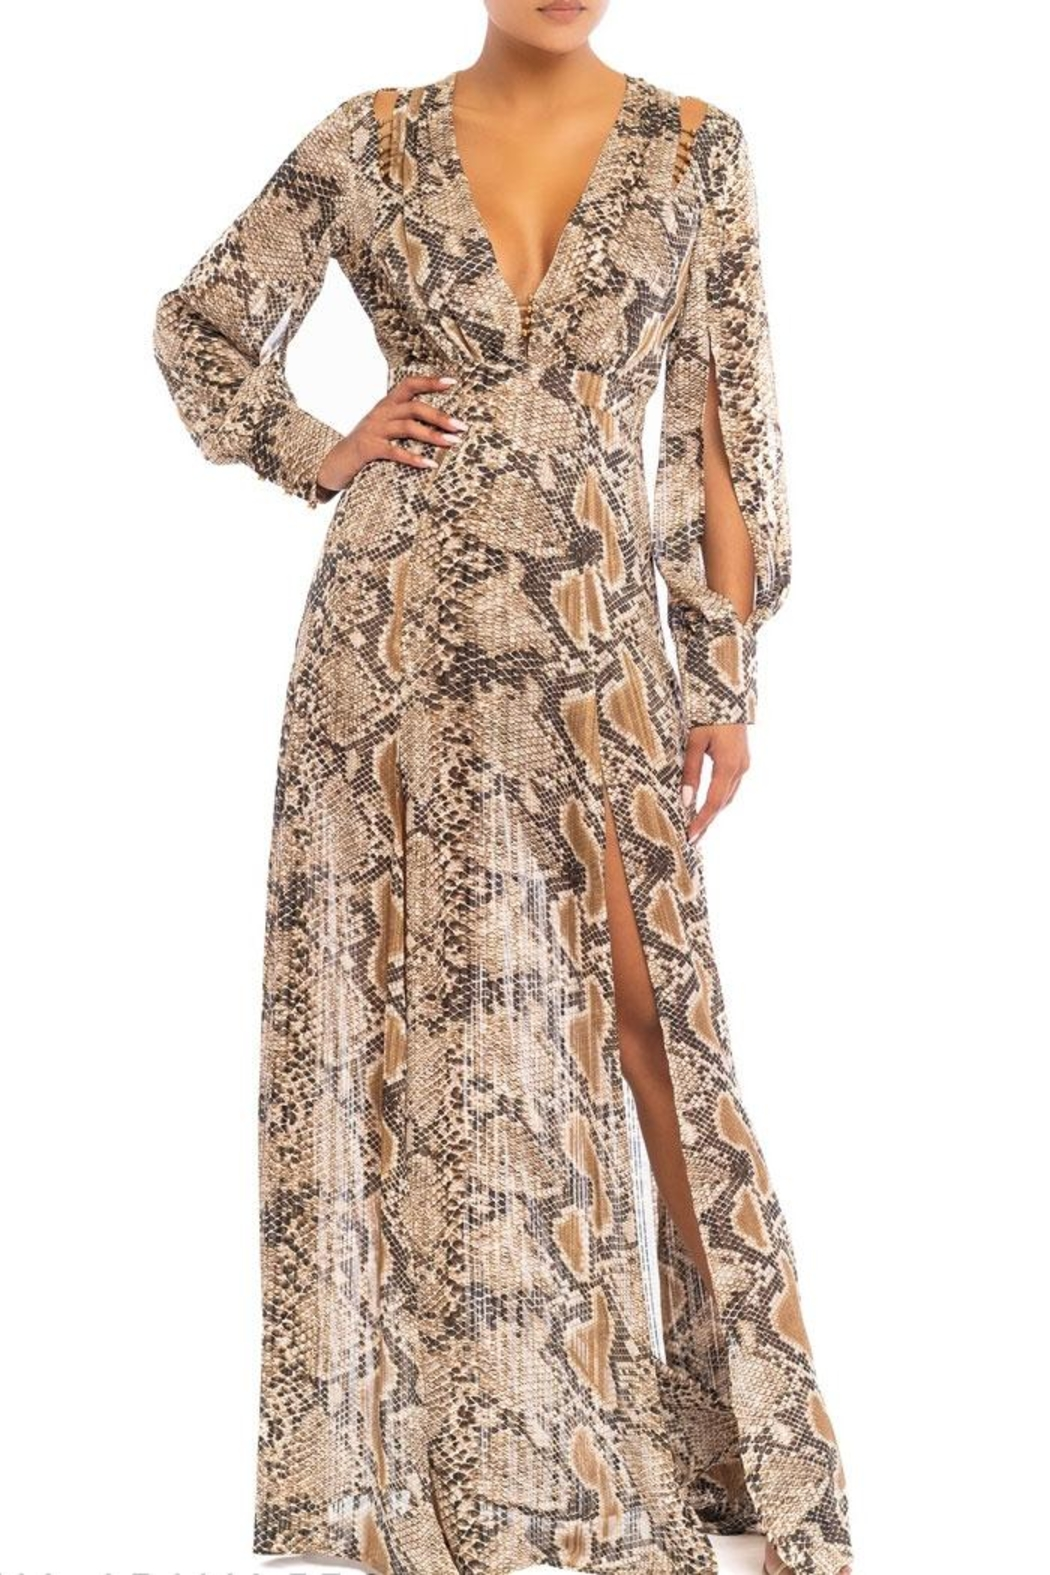 luxxel Gold Bead Snake Maxi Dress - Main Image